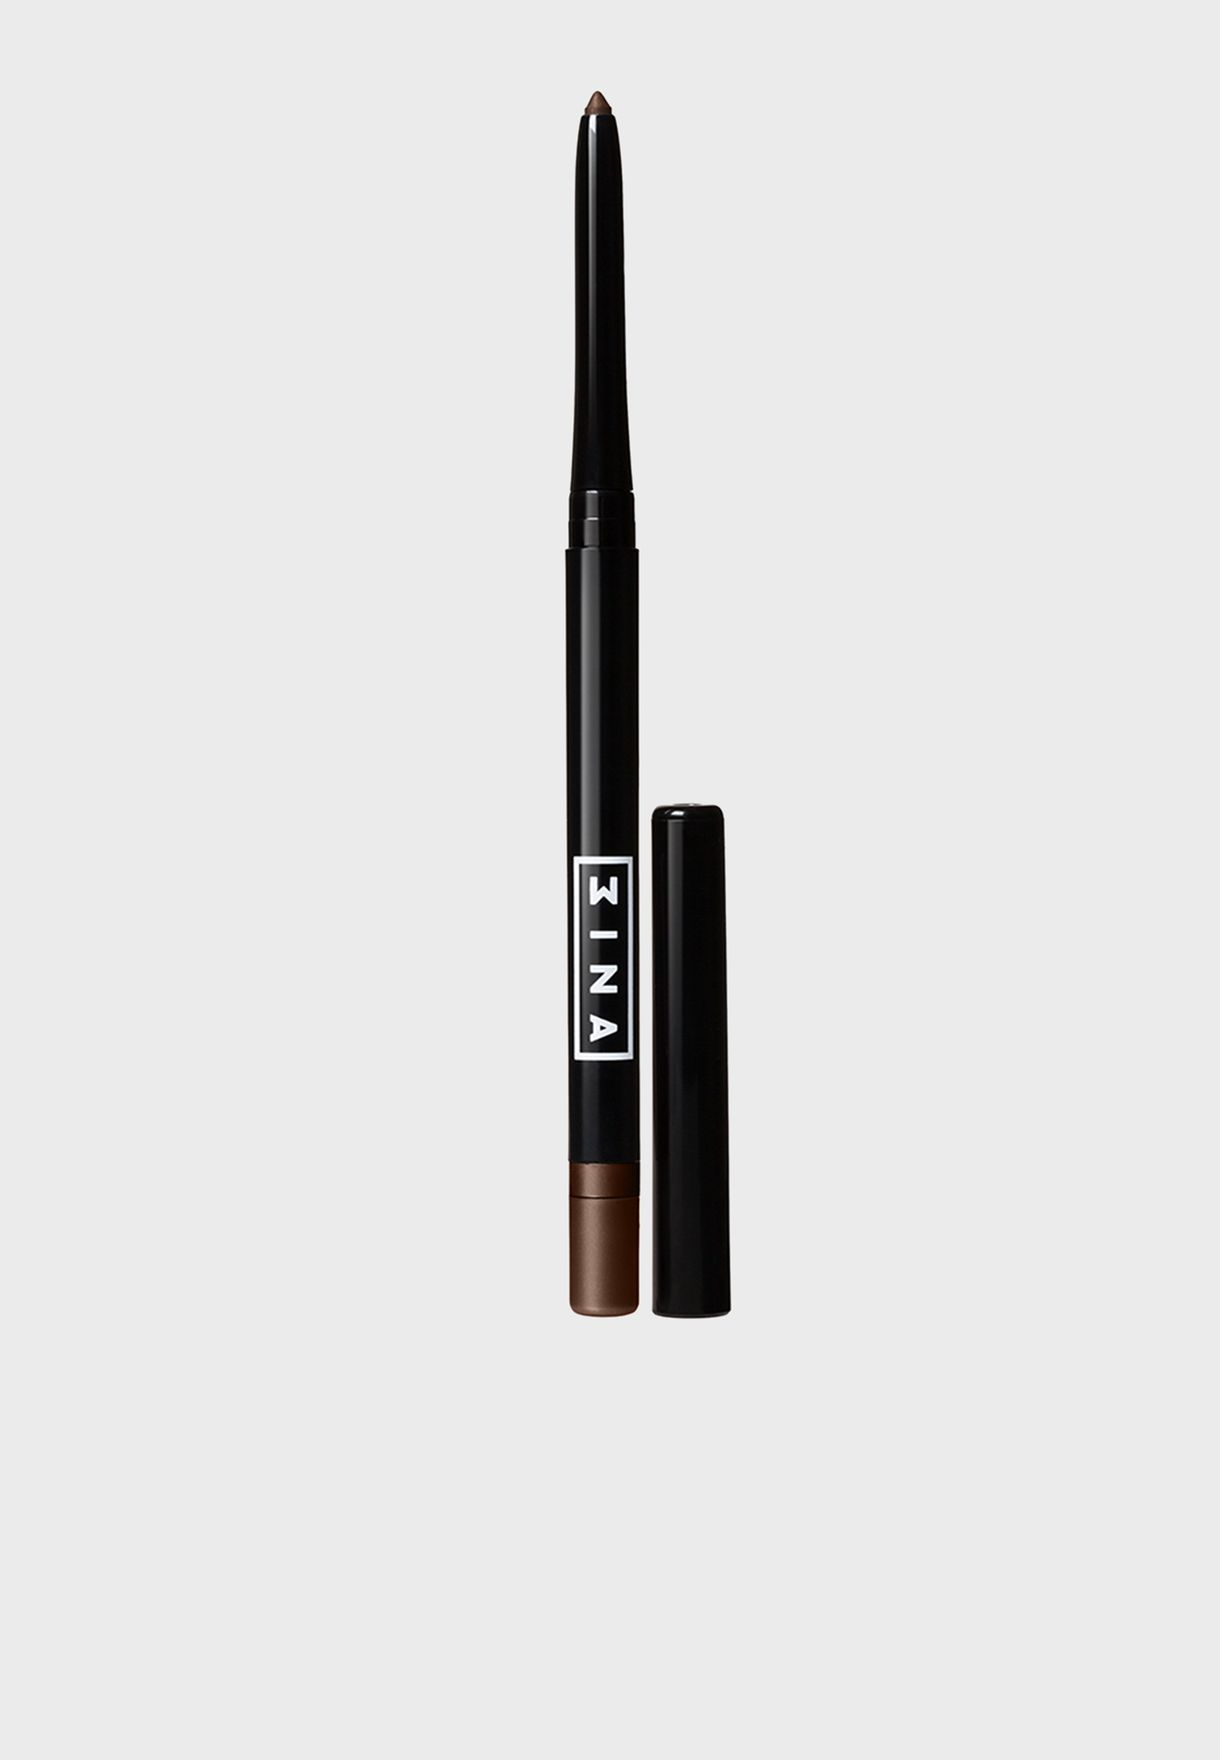 The Automatic Eye Pencil 304